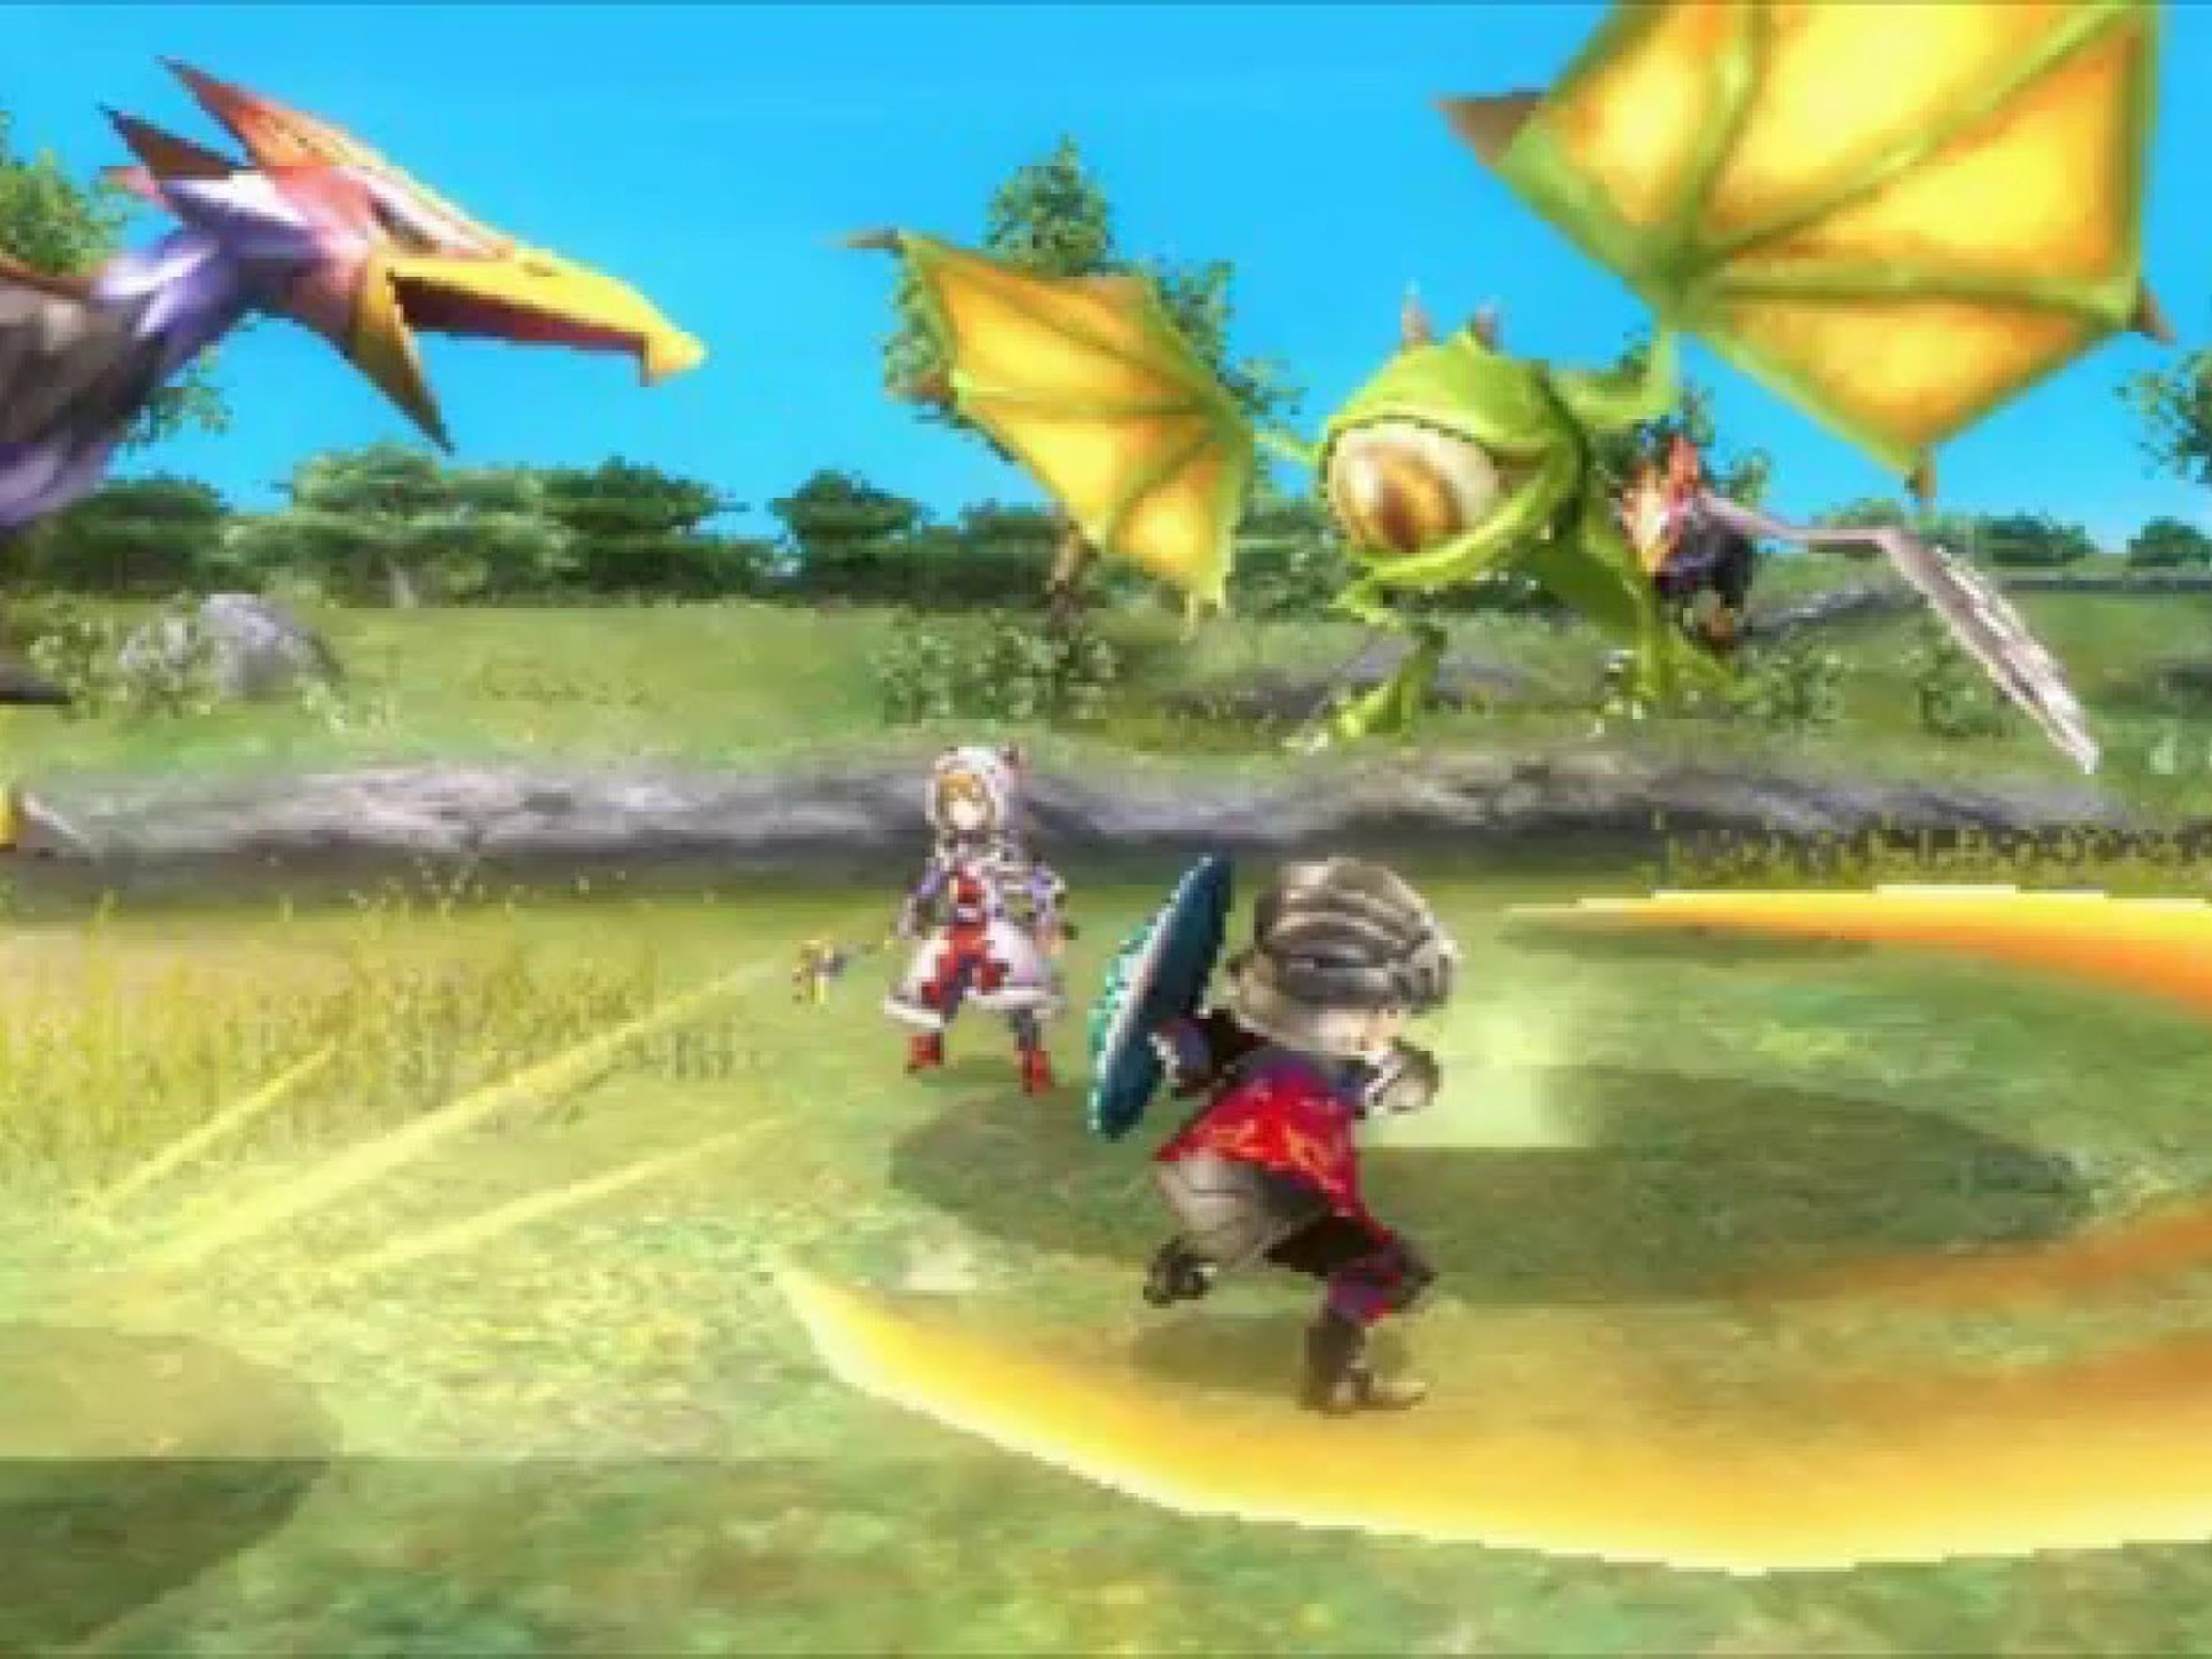 Battle monsters and craft gear in Final Fantasy Explorers